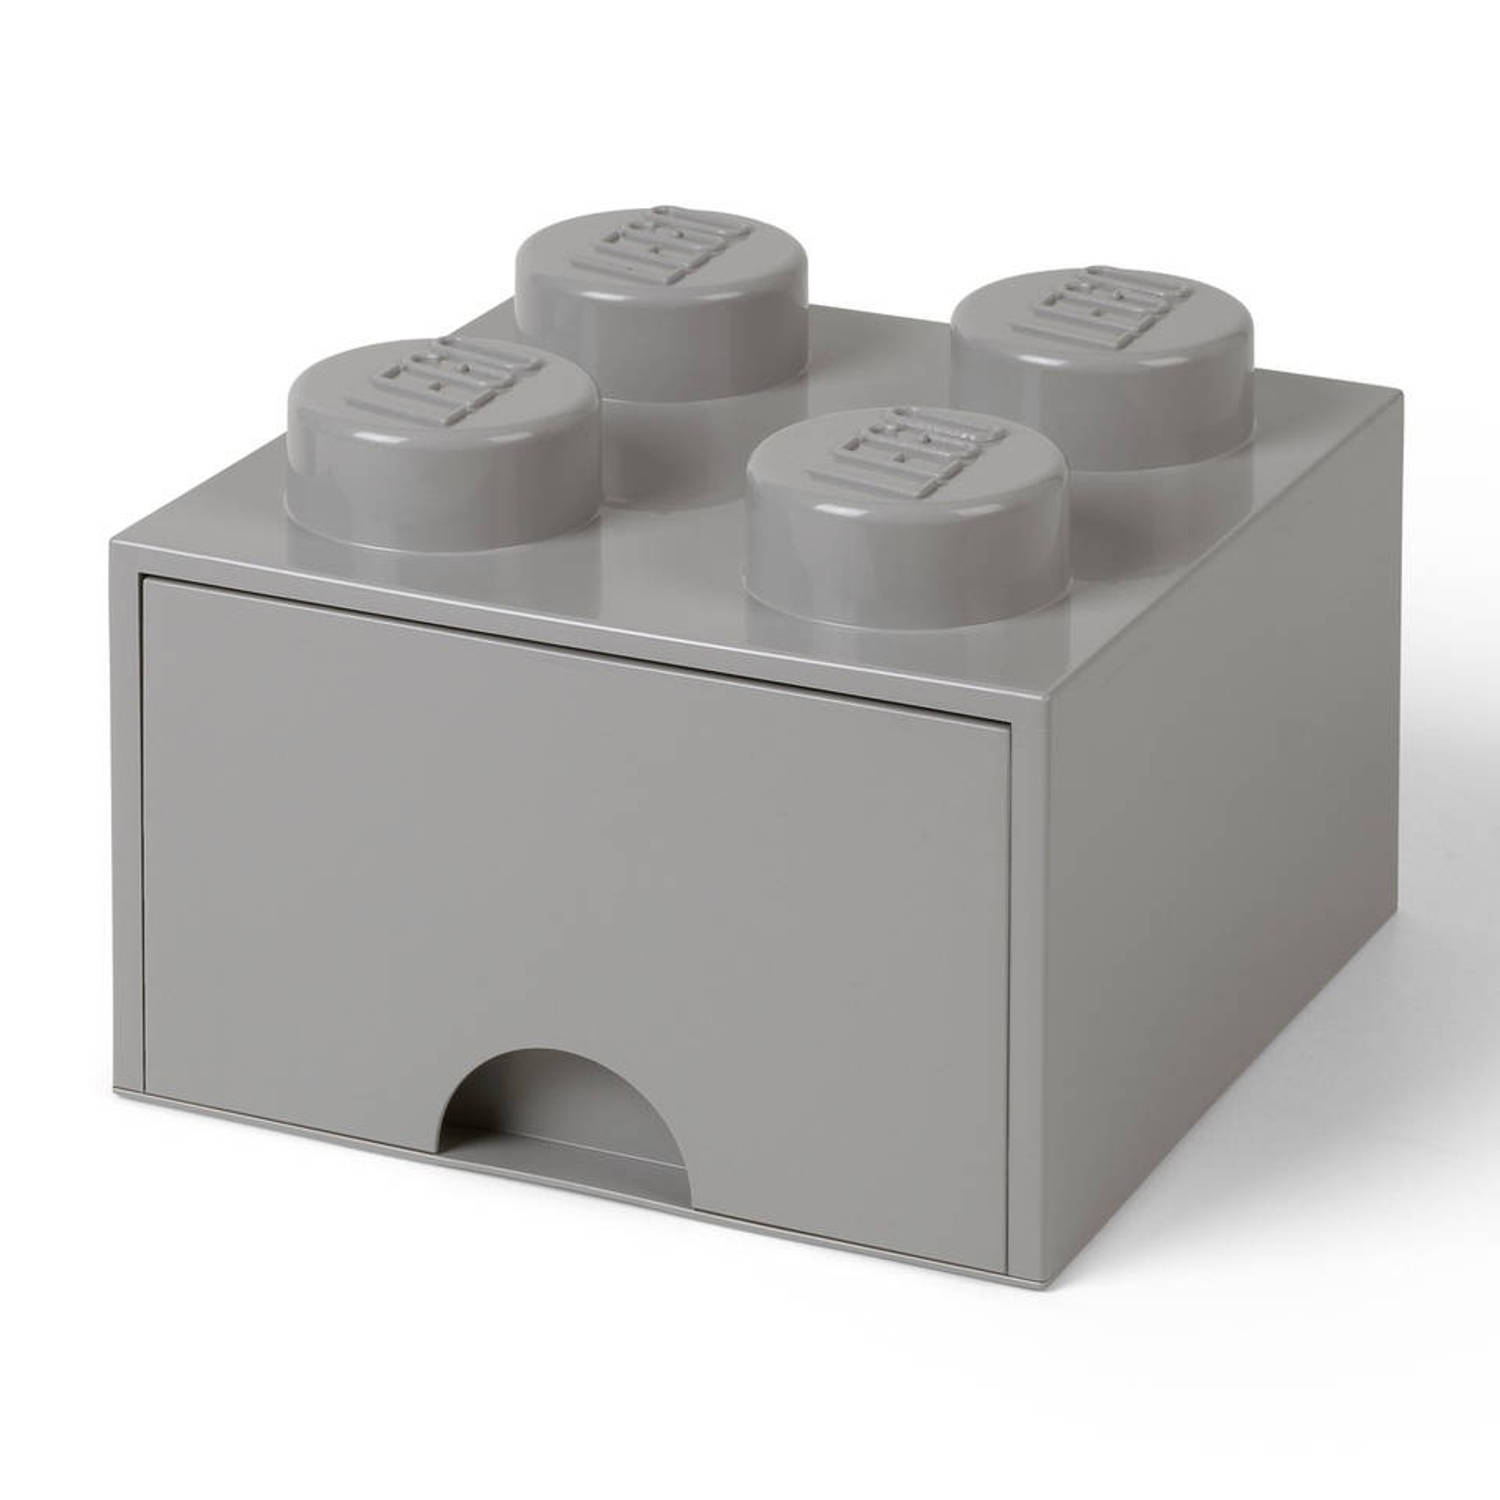 Korting Lego Brick 4 Opberglade Medium Stone Grey